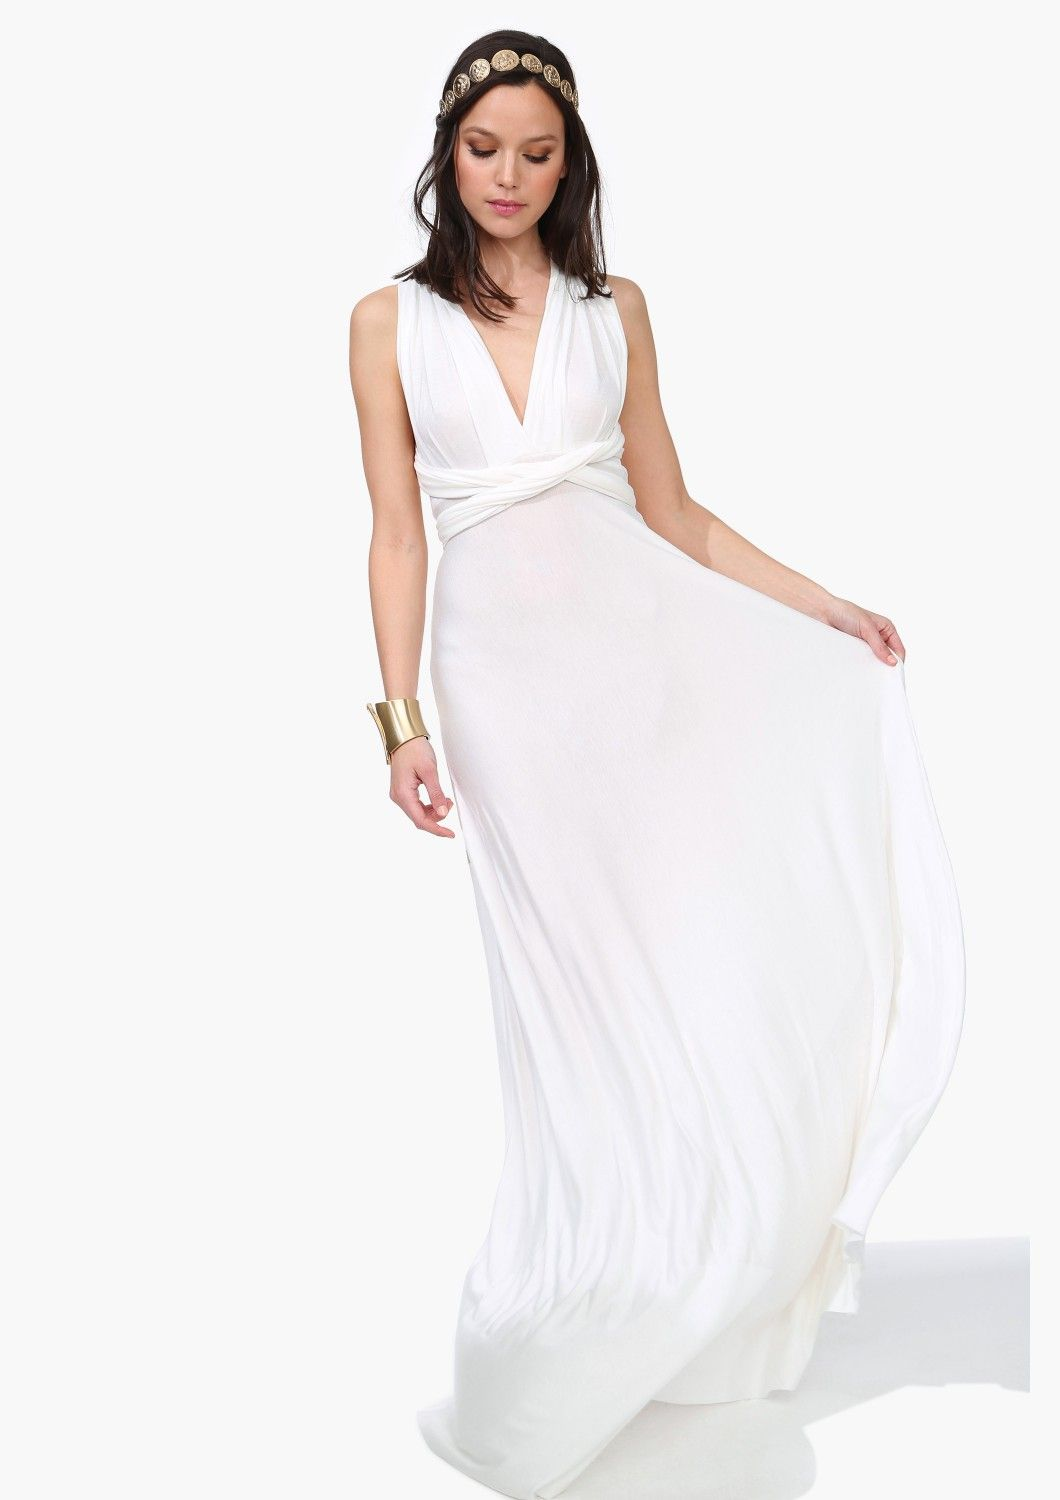 9d844edac565c Yükle (1060x1500)Changeable Maxi Dress Necessary Clothing My style - haves,  want and wish list ;) Pinterest Стиль, Белье and ПлатьяChangeable Maxi  Dress ...